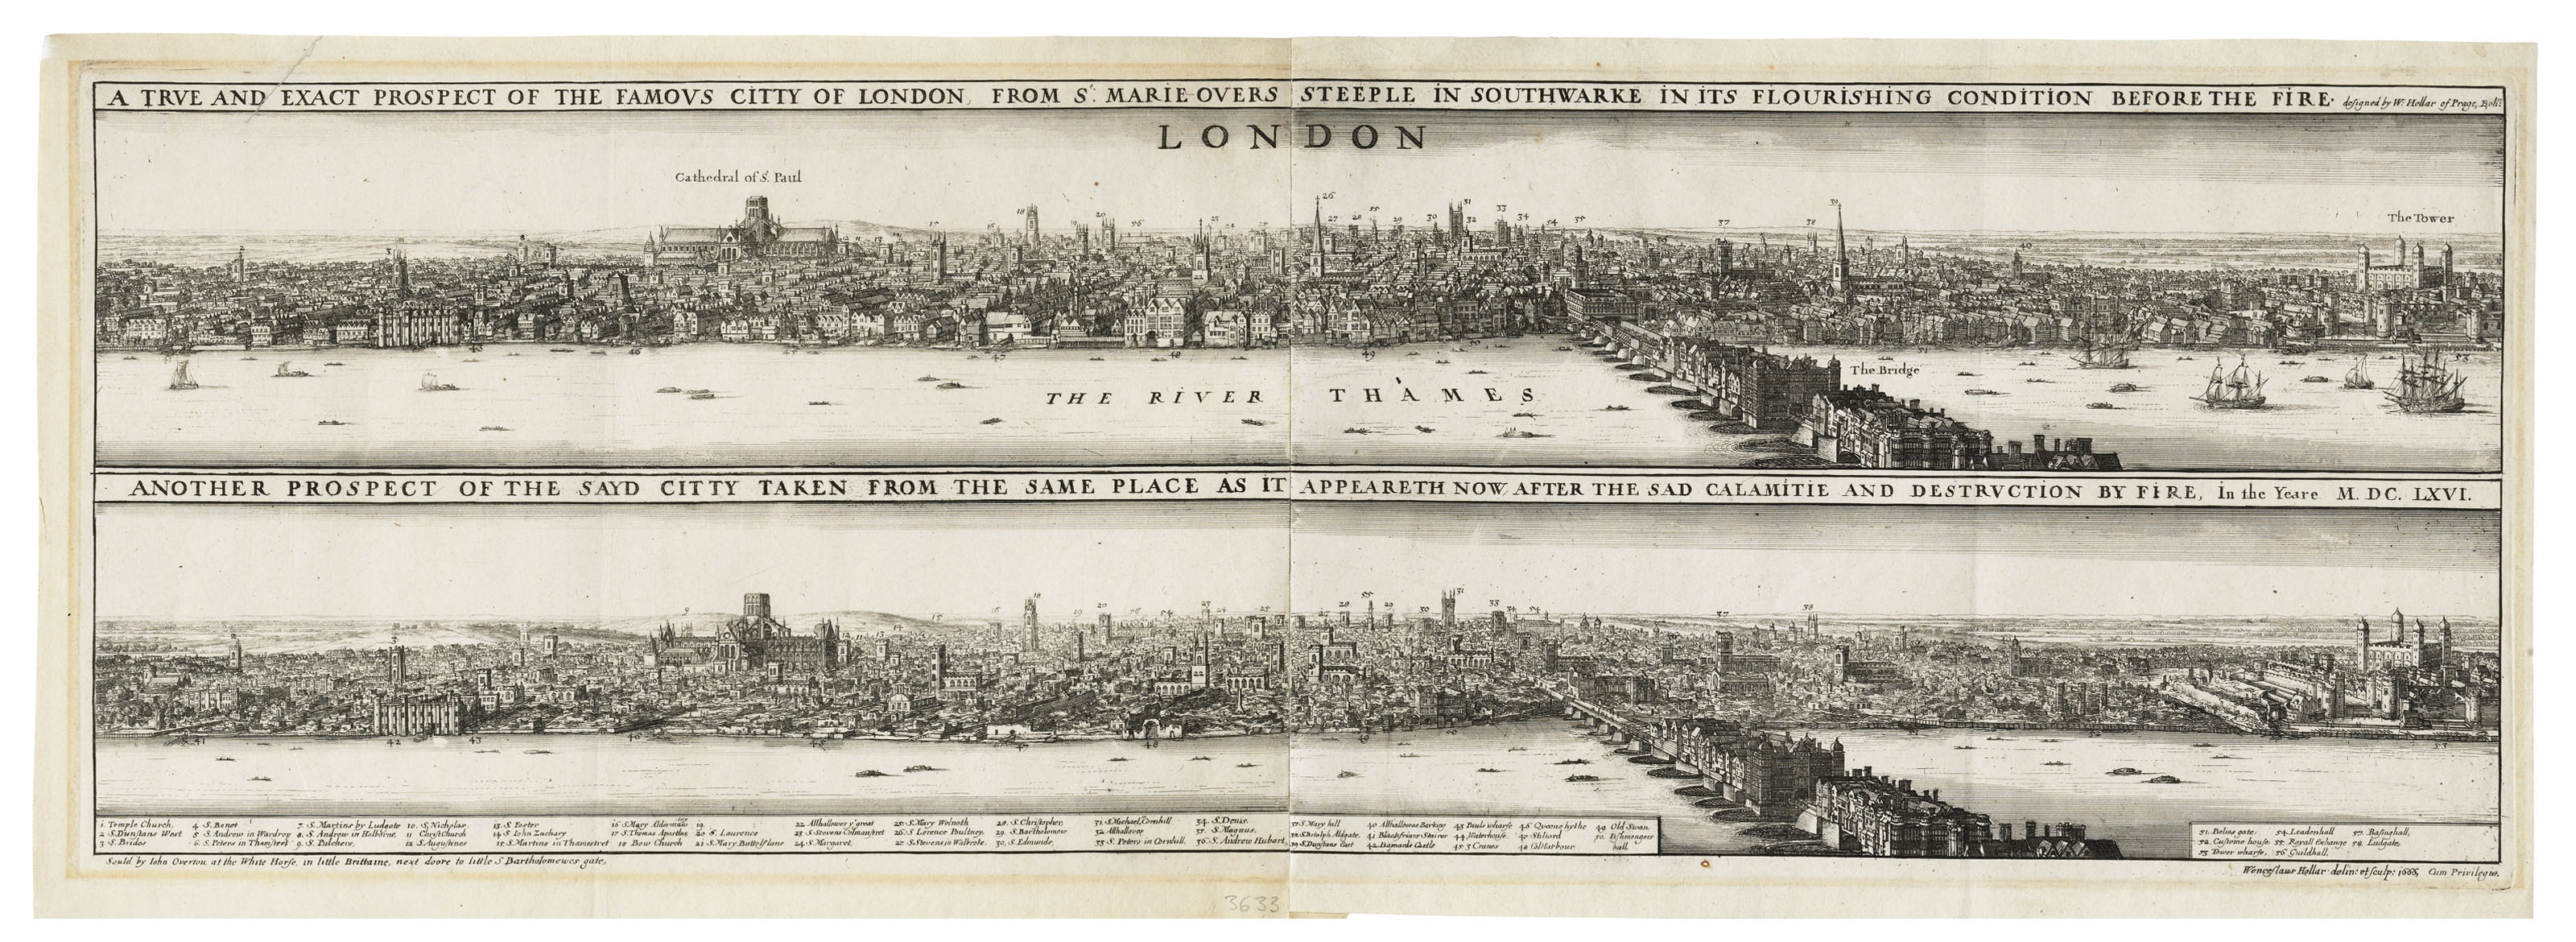 Prospects of London before and after the Great Fire